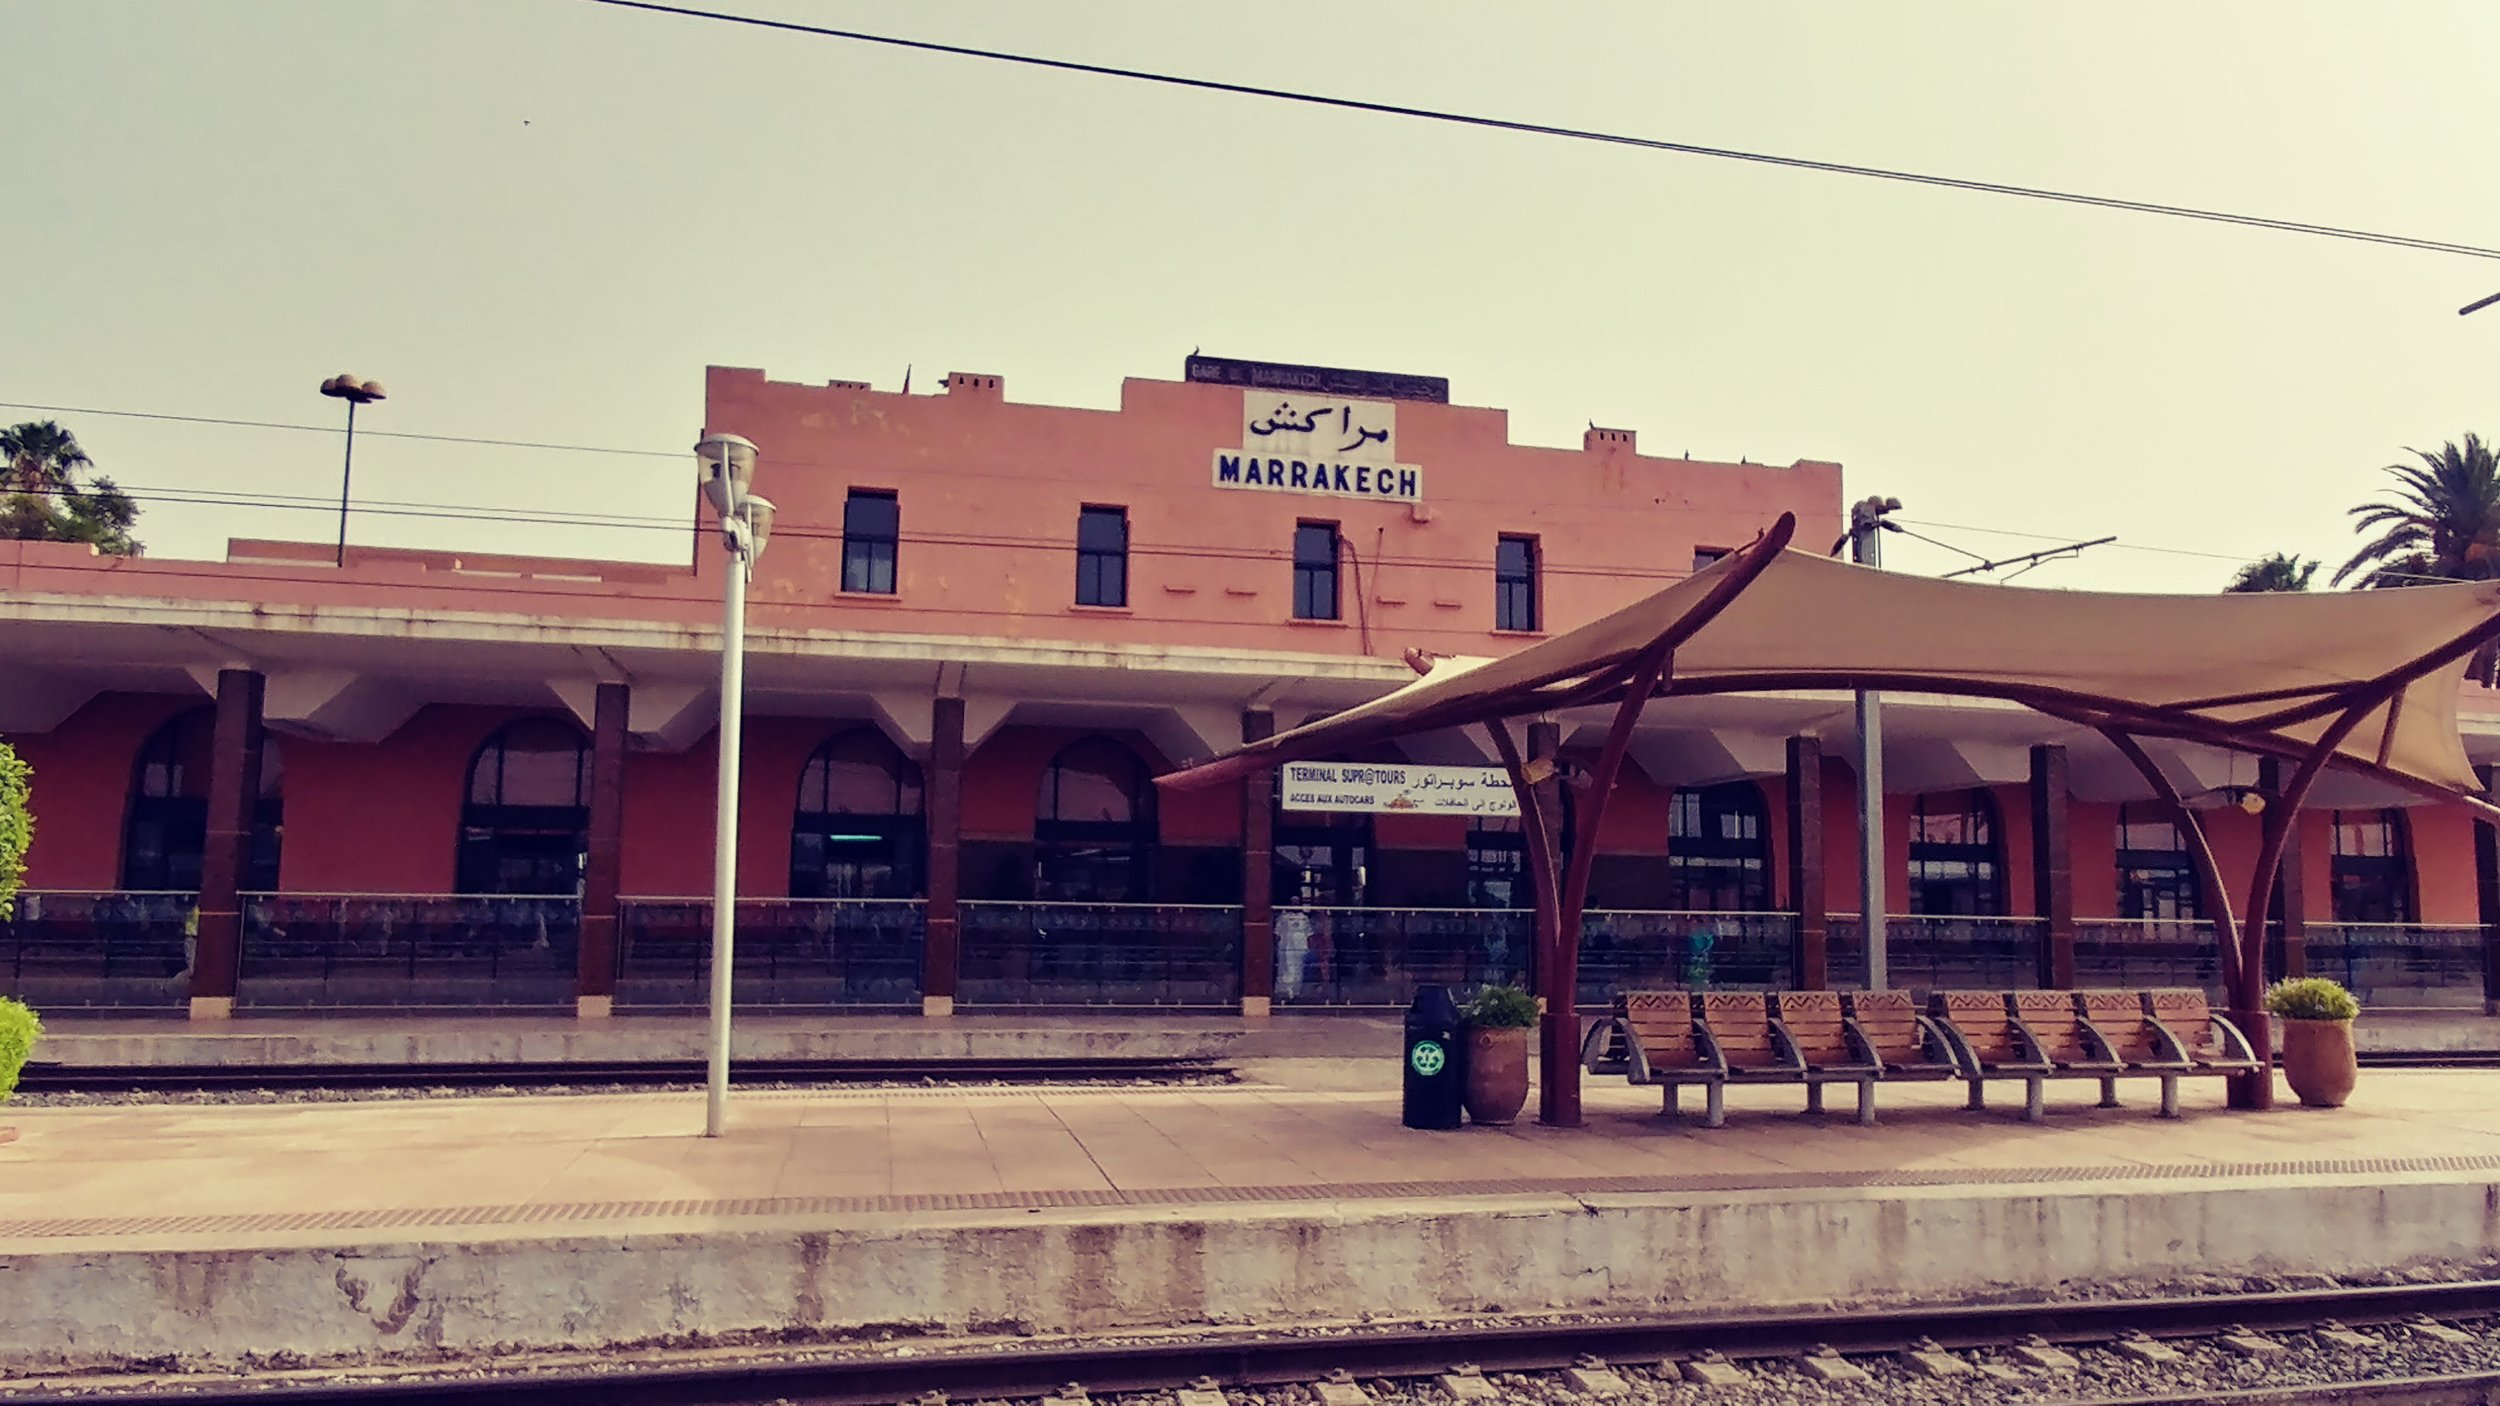 Train depot in Marrakesh